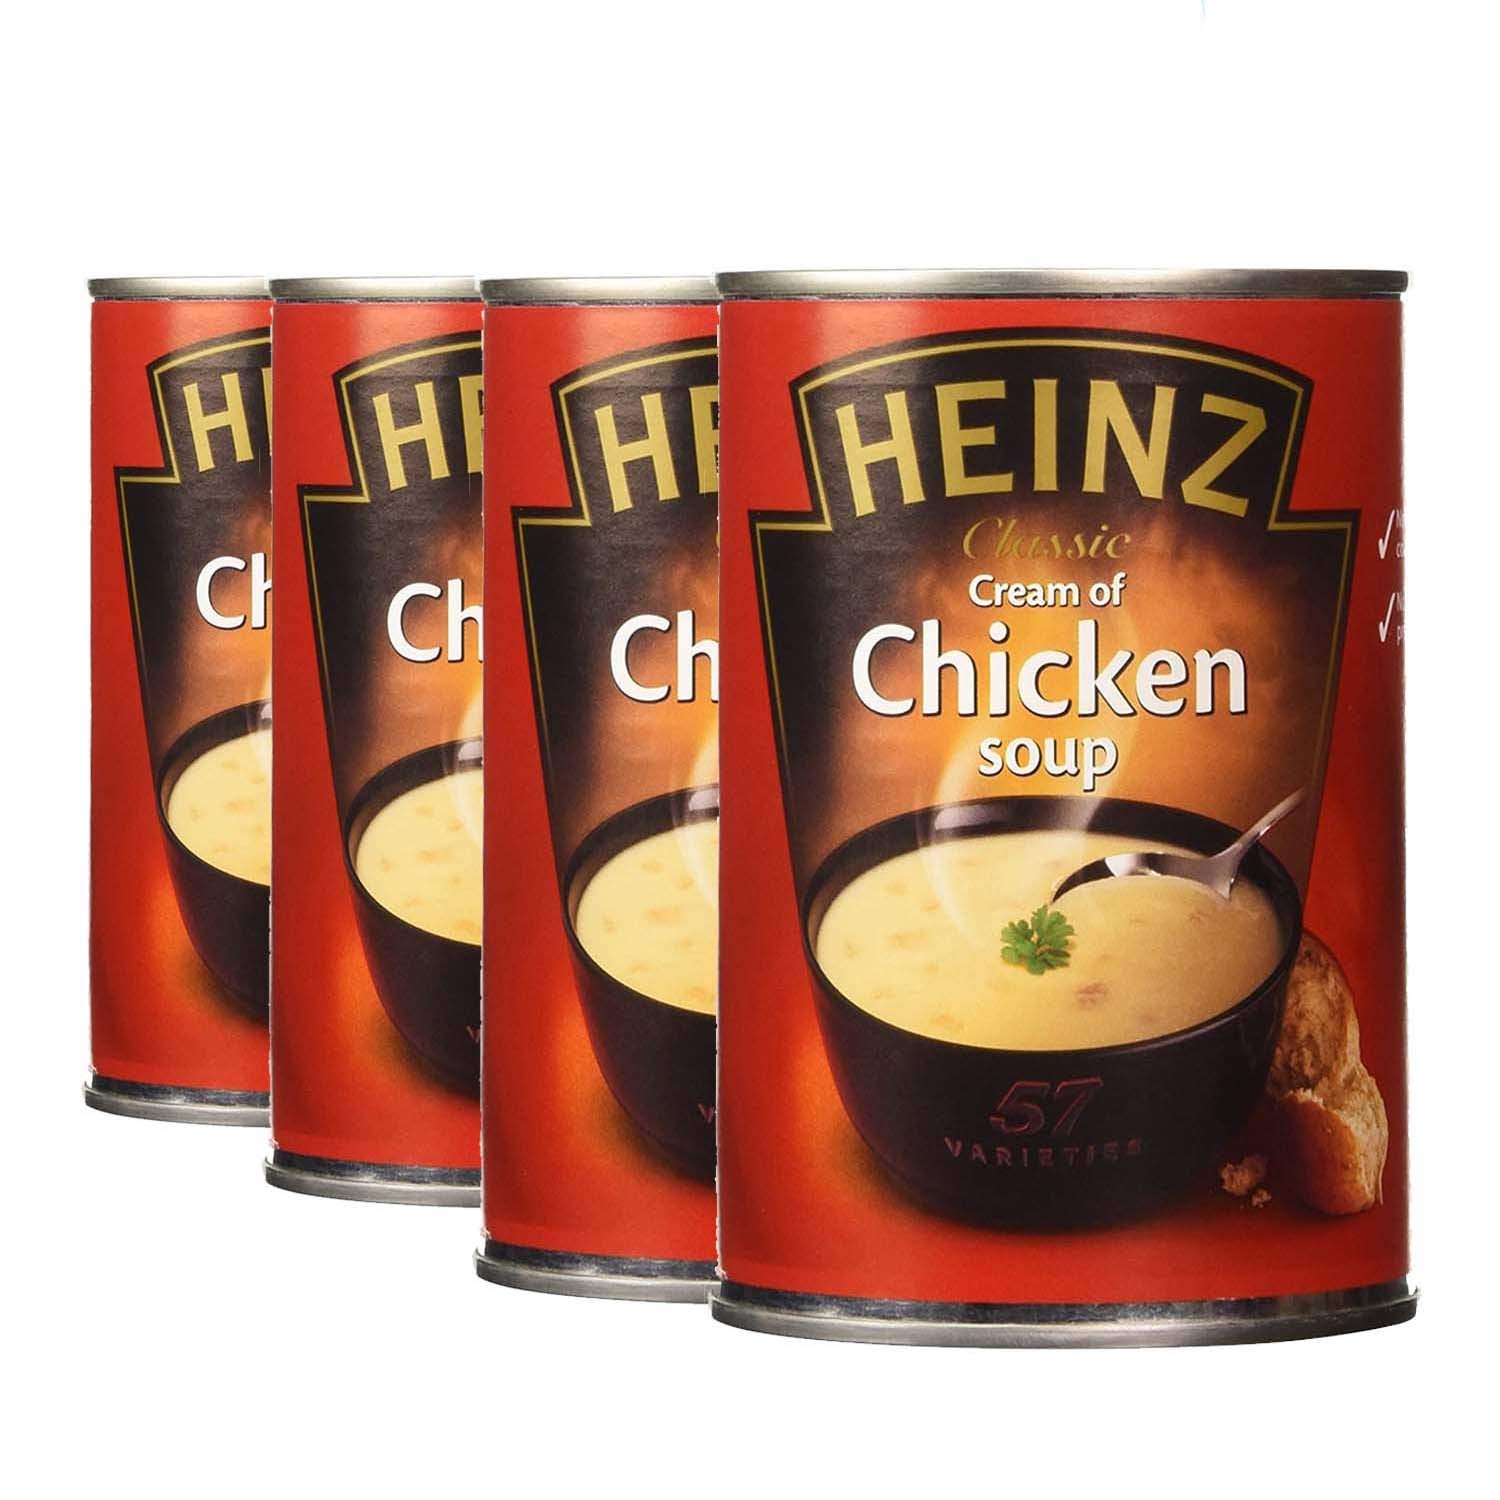 Heinz Cream of Chicken Soup Can 4 Pack, 4 x 400 g